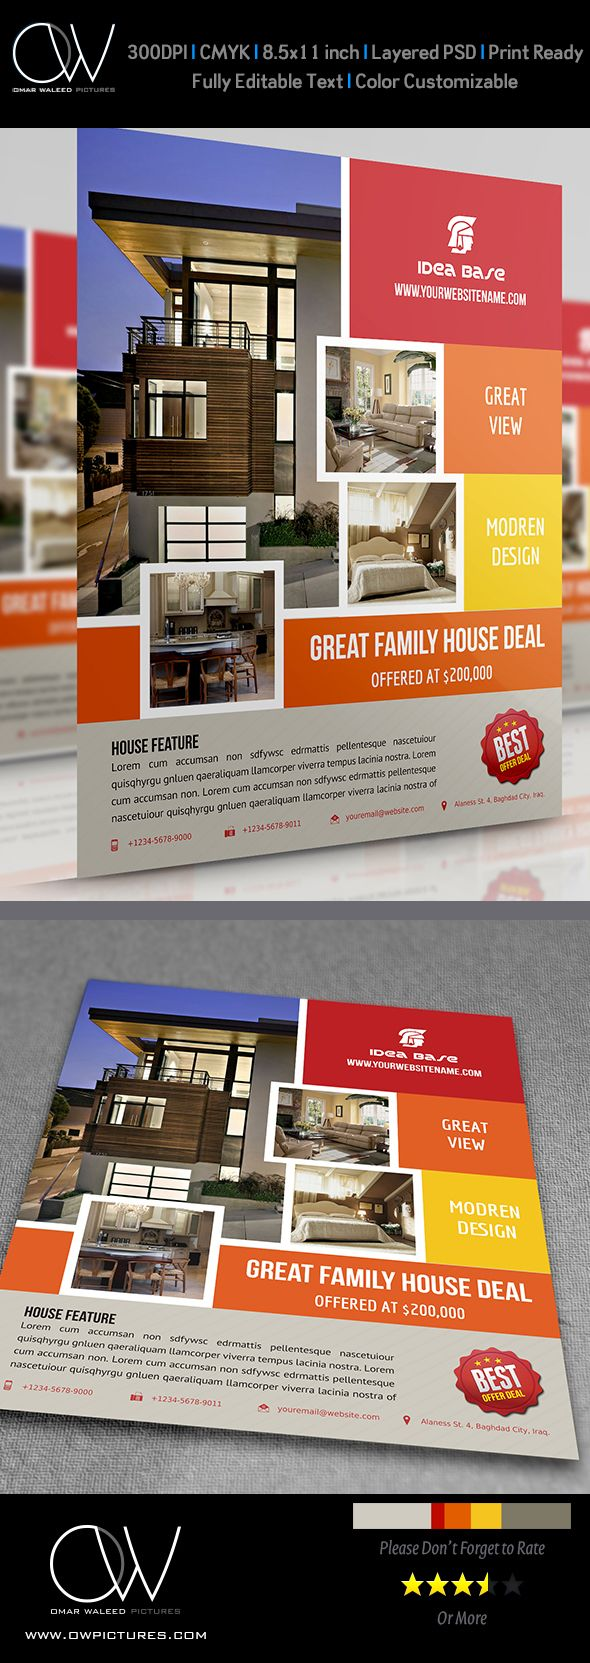 Real Estate Flyer Vol5 by OW Pictures